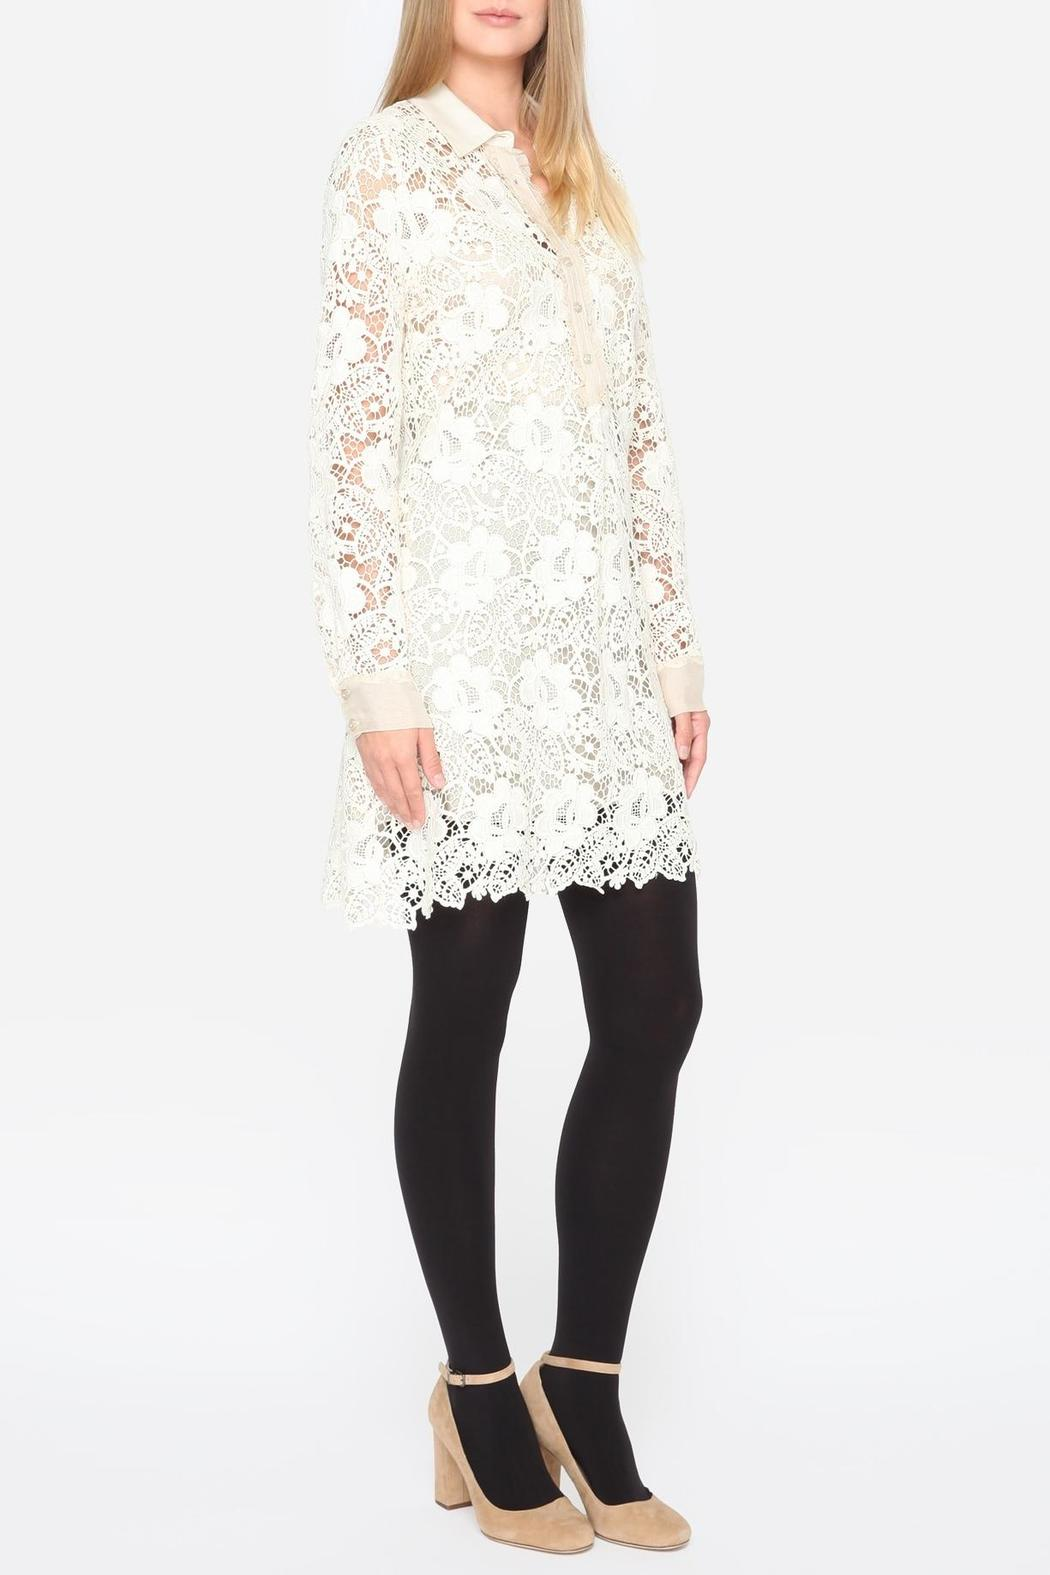 Johnny Was Crochet Sleeve Dress - Side Cropped Image